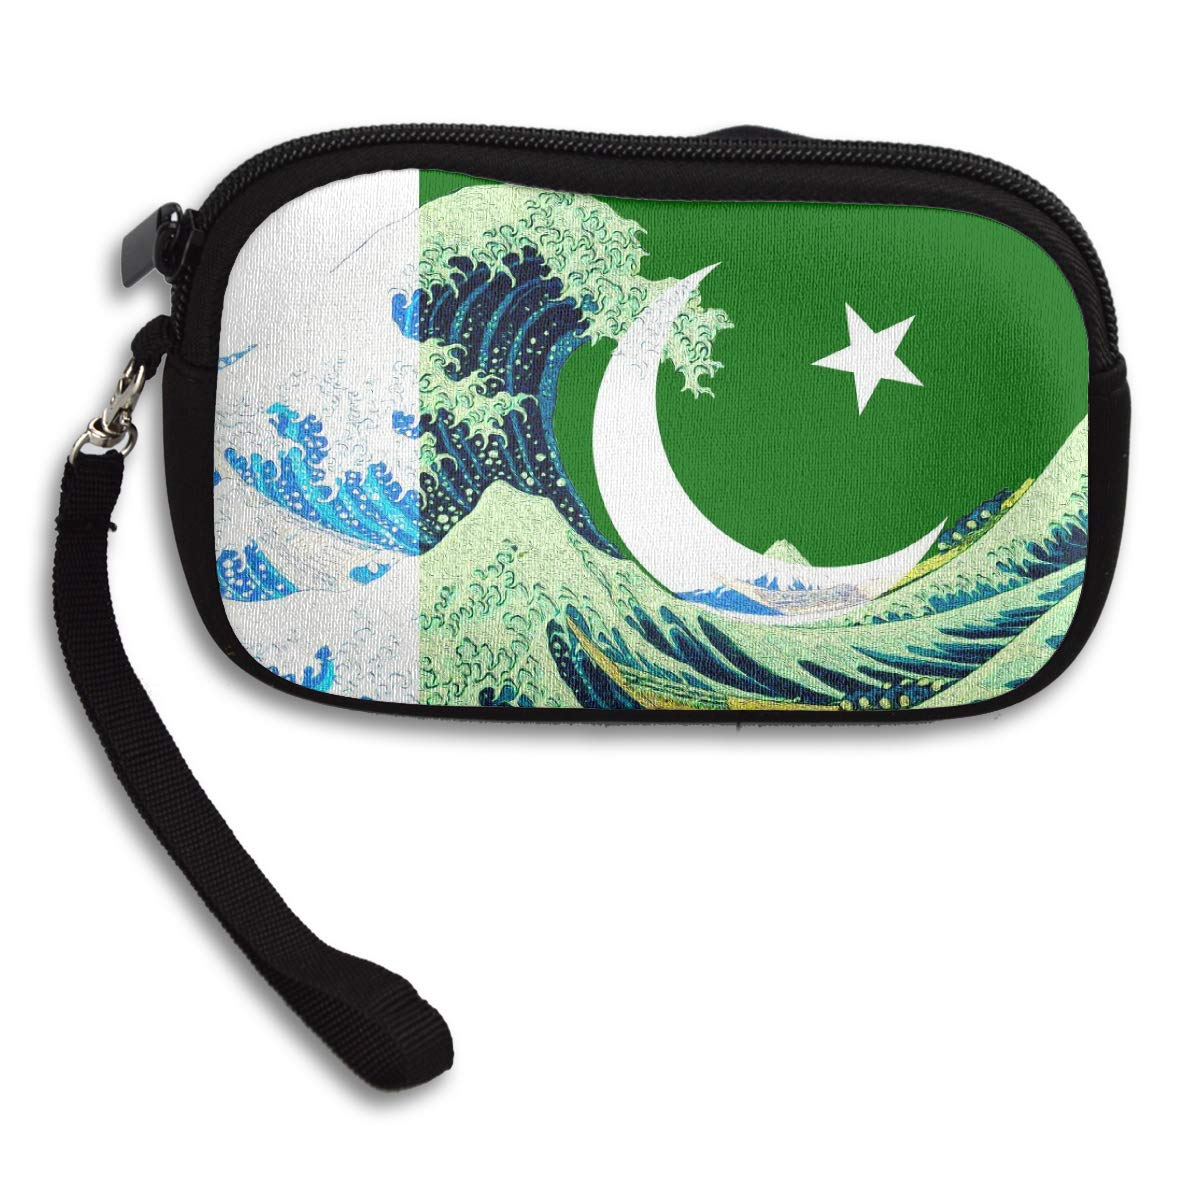 Coin Purse Pakistan Flag And Wave Off Kanagawa wallet change Purse with Zipper Wallet Coin Pouch Mini Size Cash Phone Holder